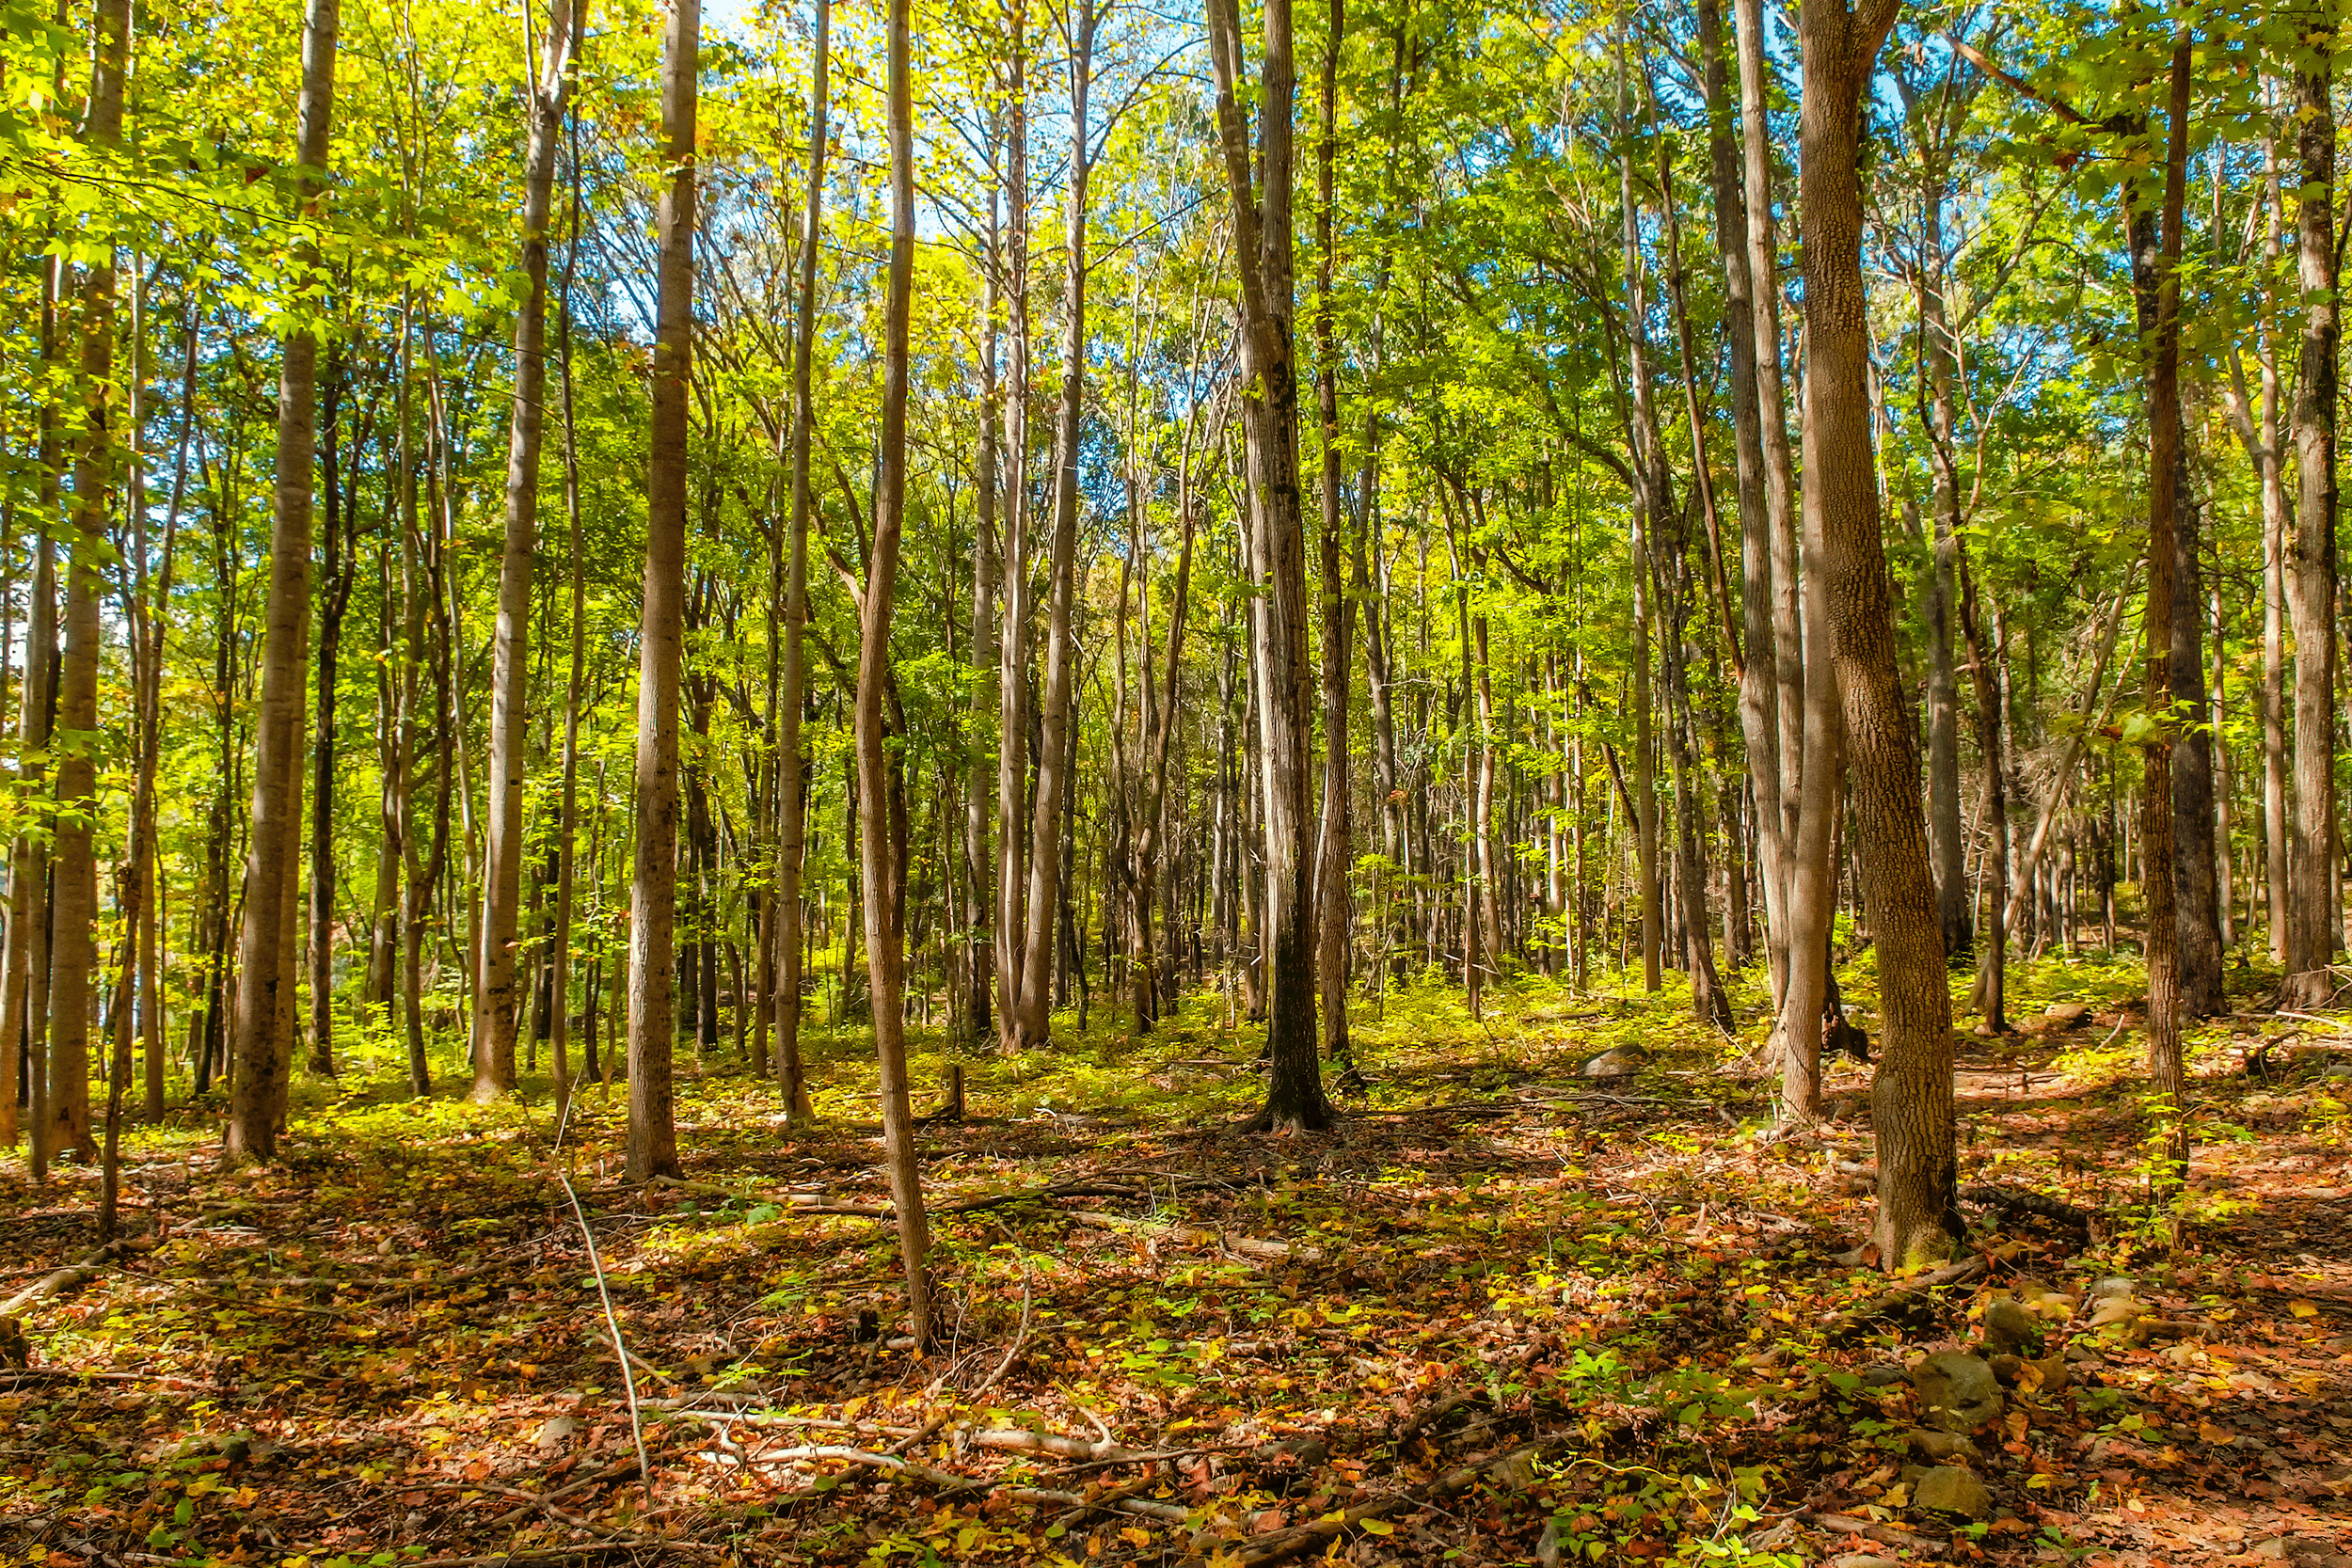 The mature hardwood forest along  Split Rock Trail  makes for an excellent canopy in the summer heat.